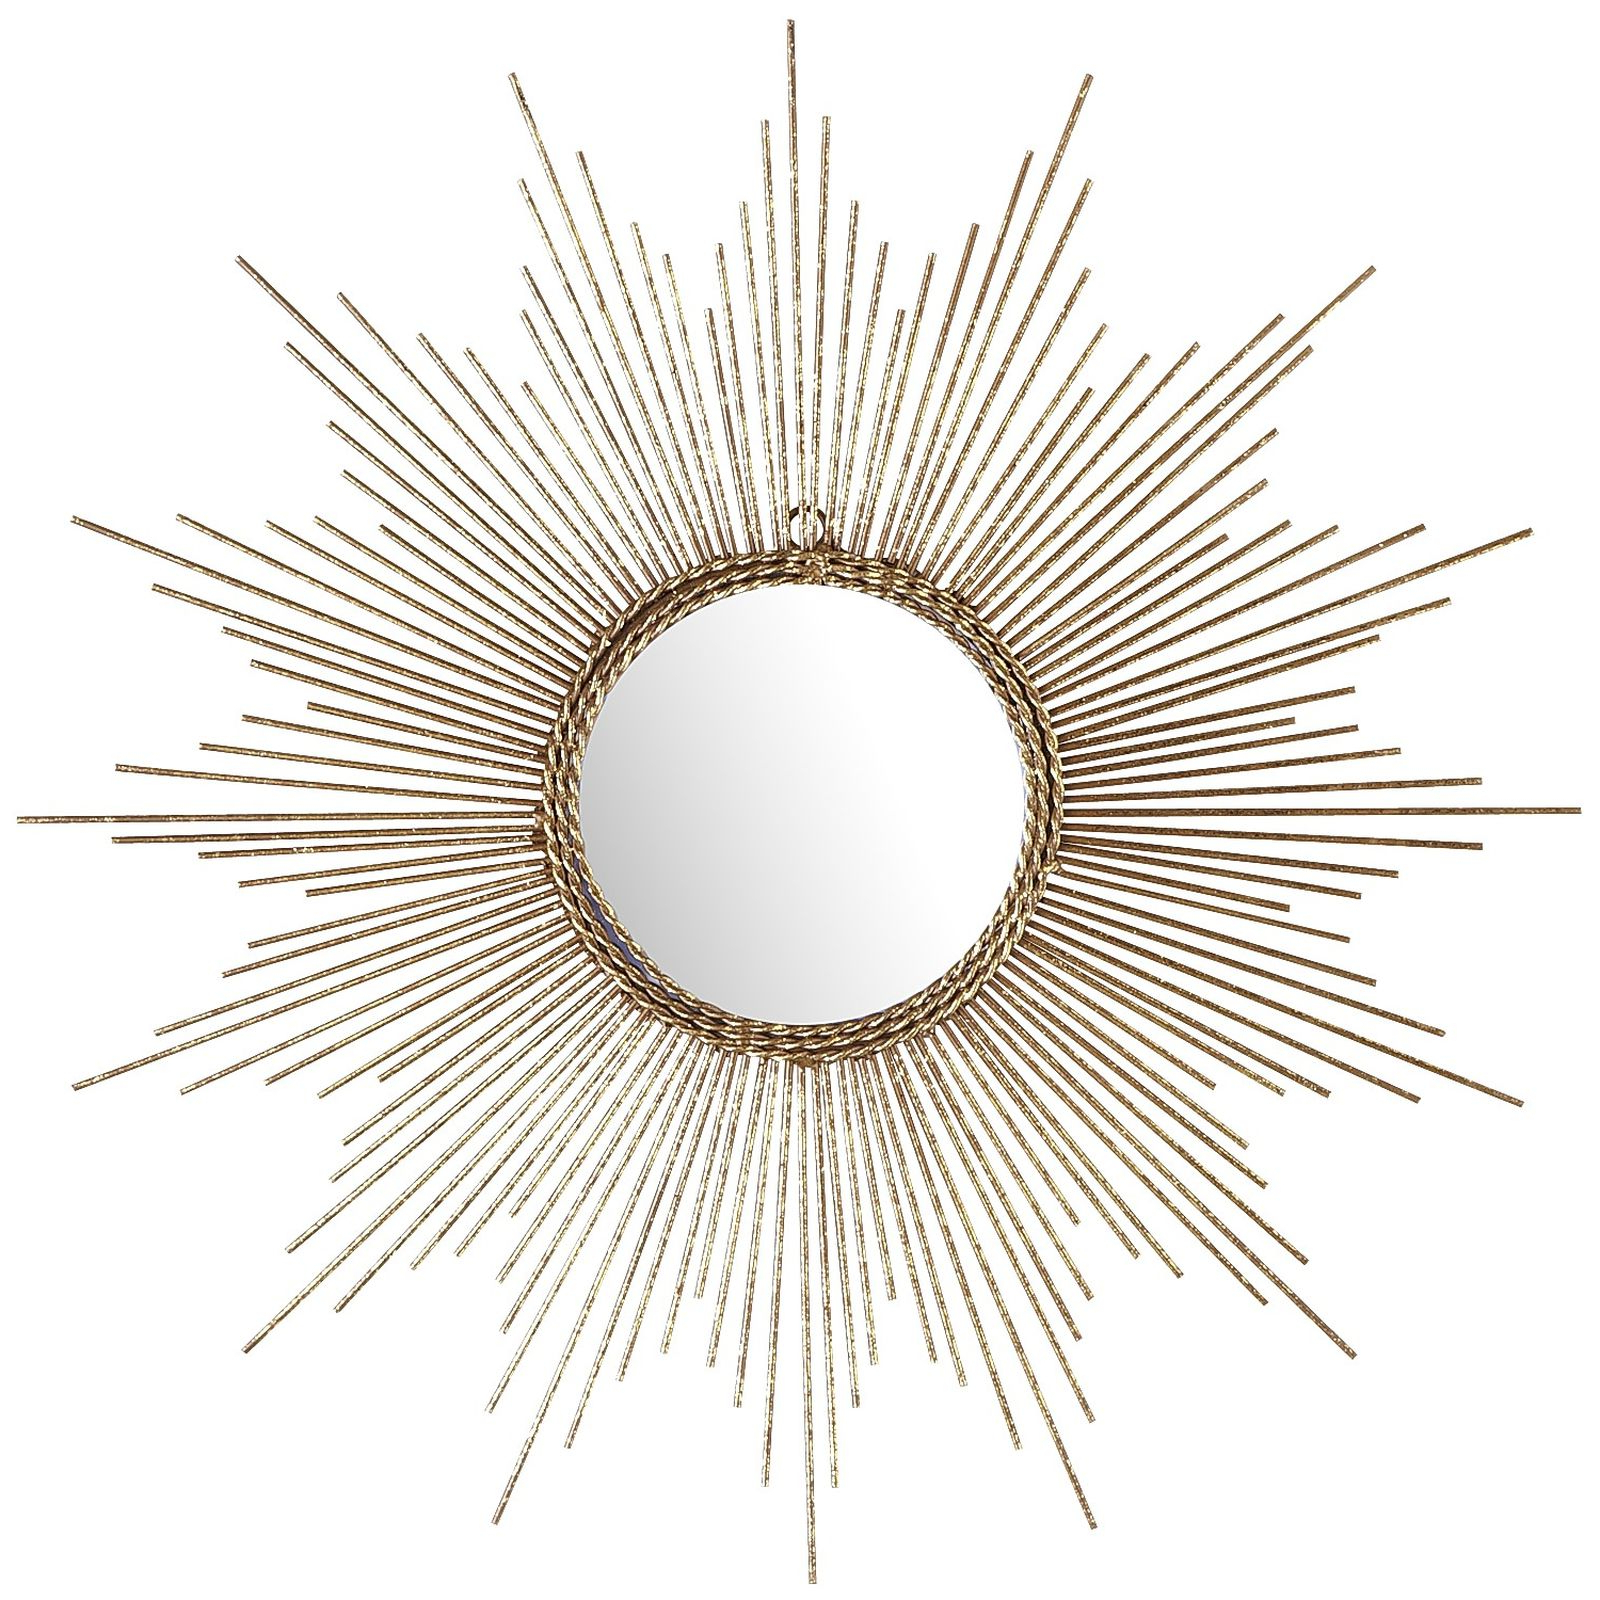 Sun Ray Wall Mirrors Intended For Most Recent Tremendous Sun Mirror Wall Decor With Petite Gold Burst (Gallery 10 of 20)